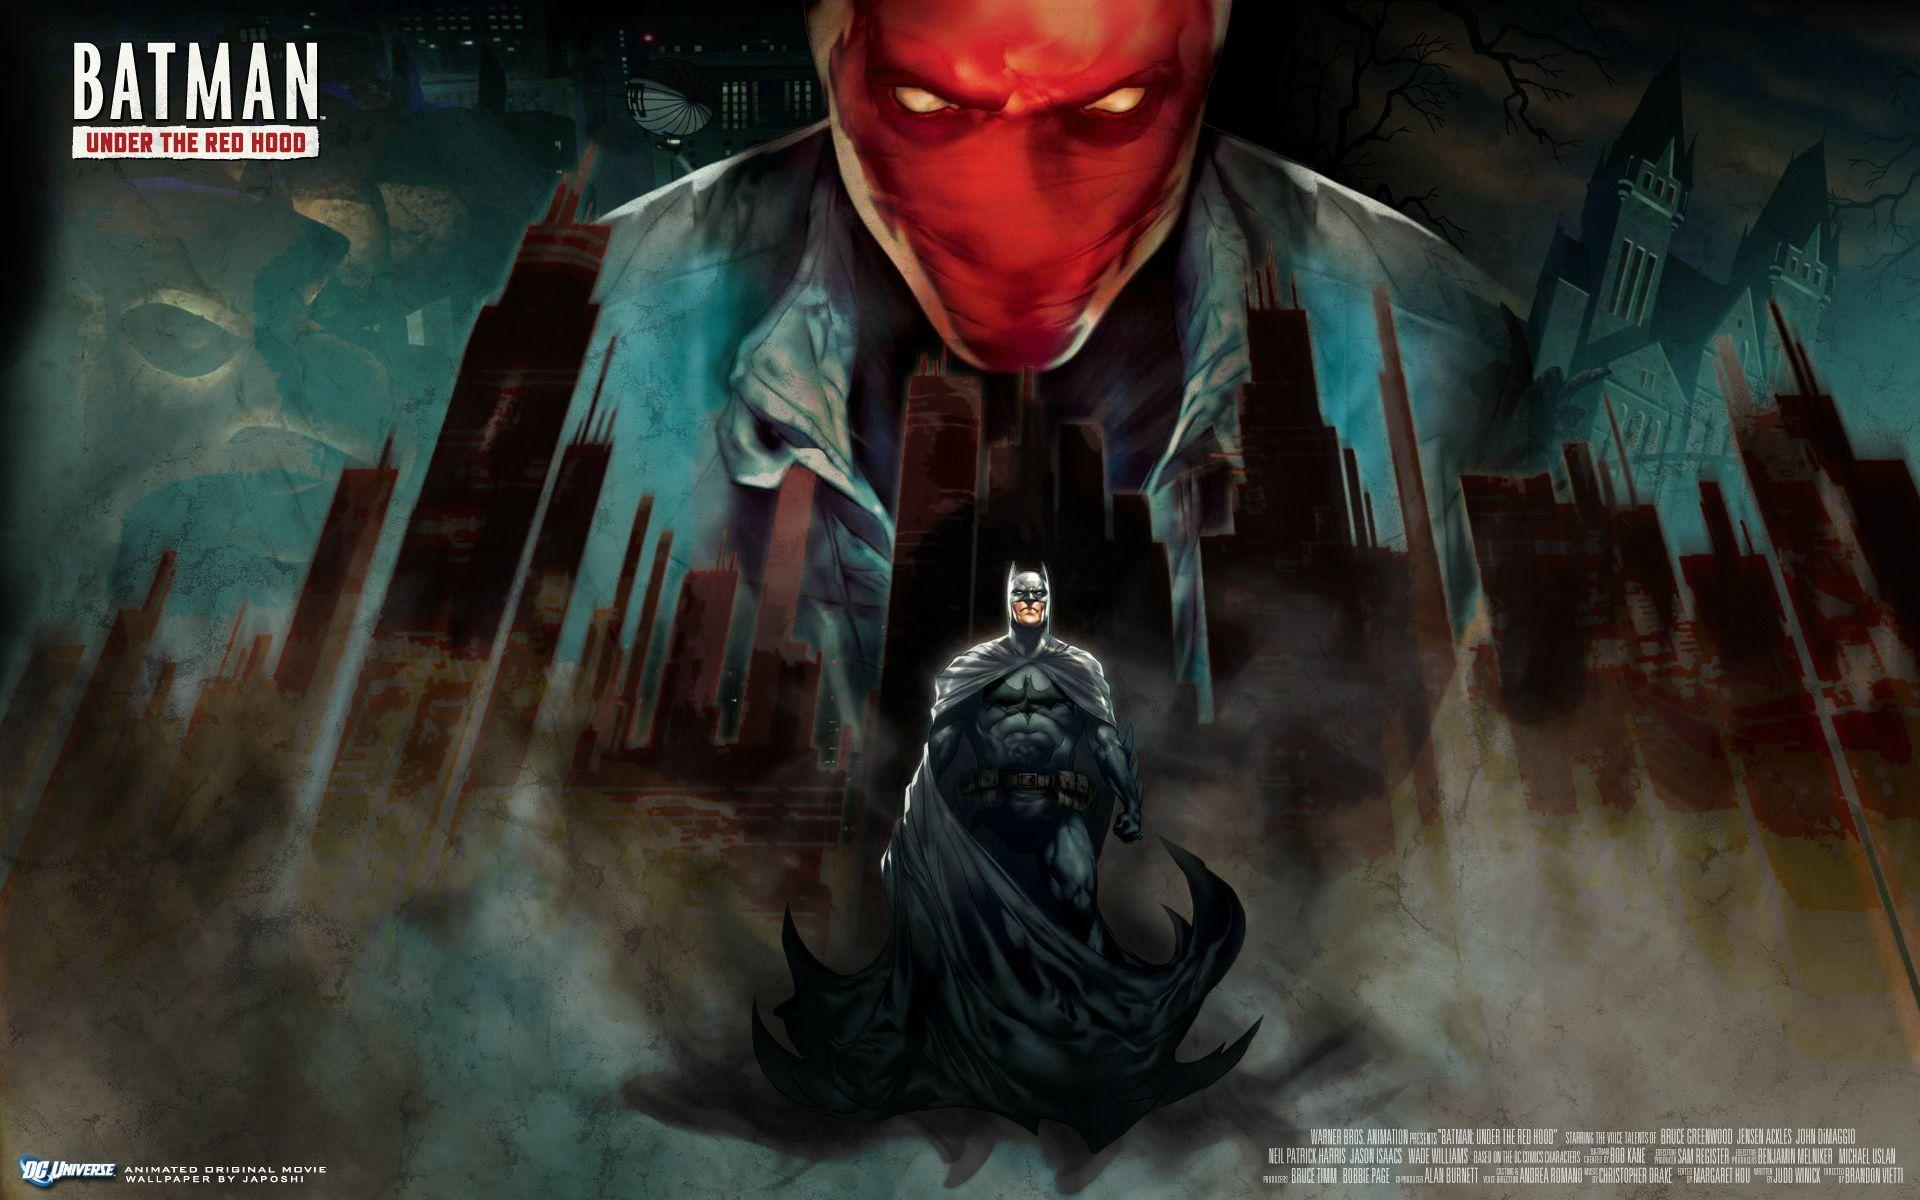 Batman under the red hood wallpapers wallpaper cave - Hood cartoon wallpaper ...